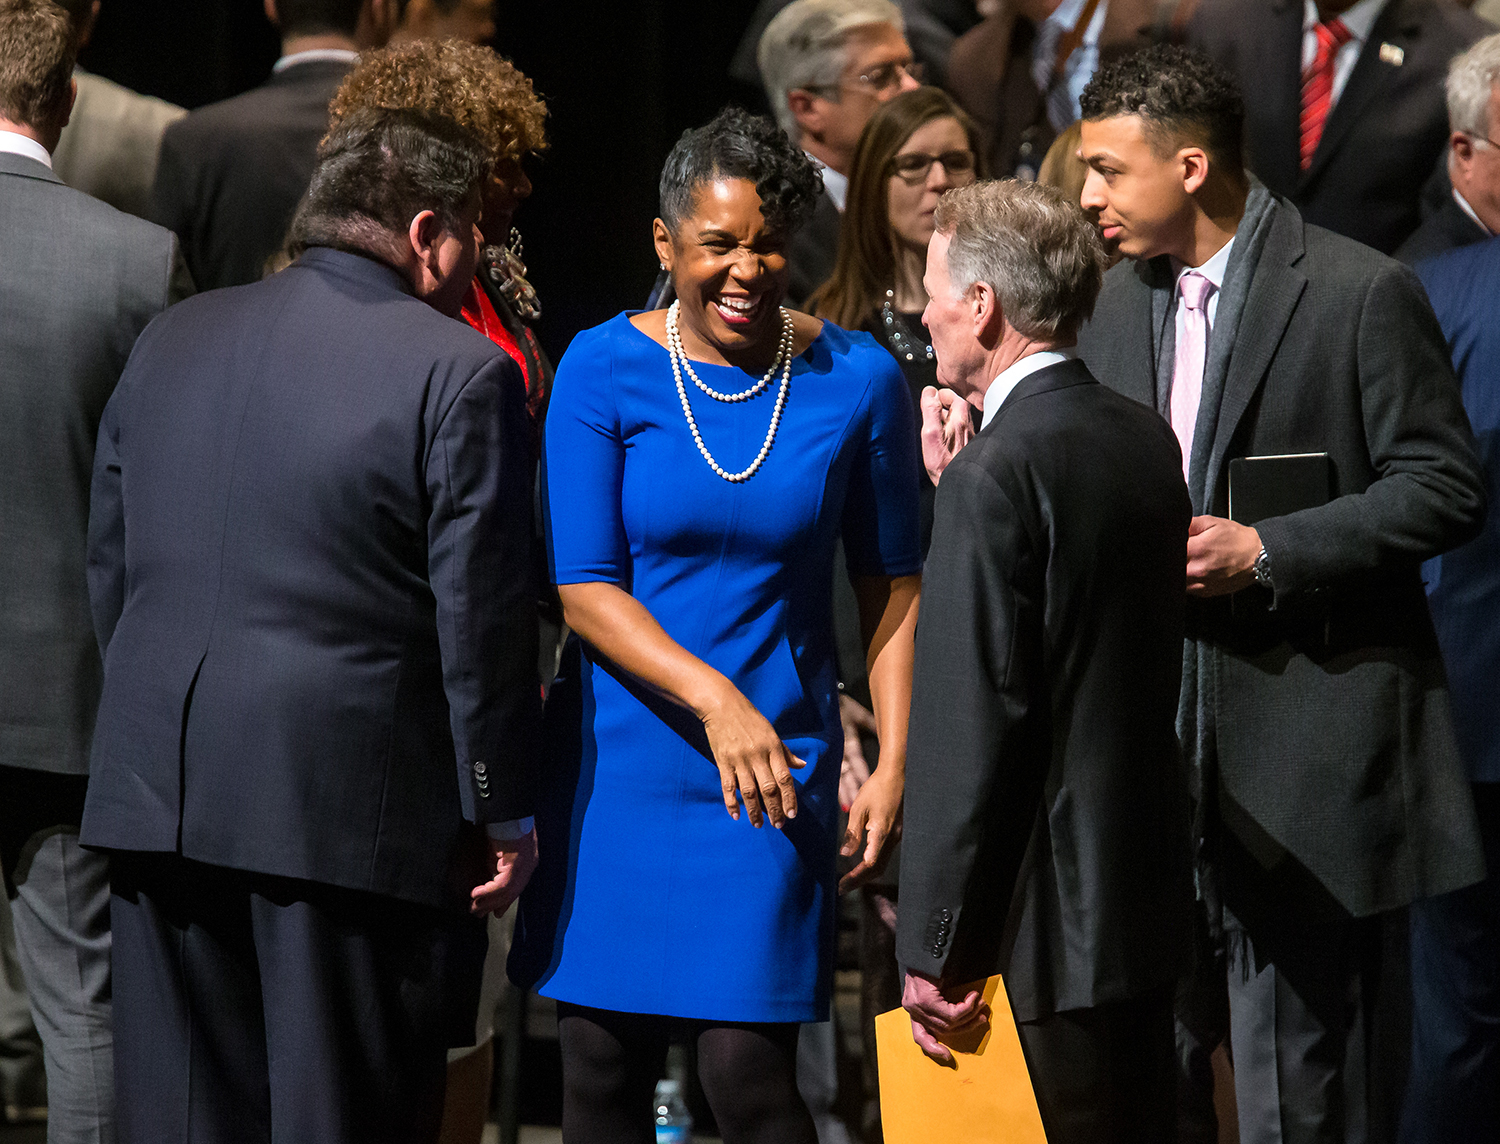 Illinois Lieutenant Governor-Elect Juliana Stratton, center, talks with Illinois Speaker of the House Michael Madigan, D-Chicago, prior to the inauguration ceremony for the Illinois House of Representatives for the 101st General Assembly at the University of Illinois Springfield's Sangamon Auditorium, Wednesday, Jan. 9, 2019, in Springfield, Ill. [Justin L. Fowler/The State Journal-Register]